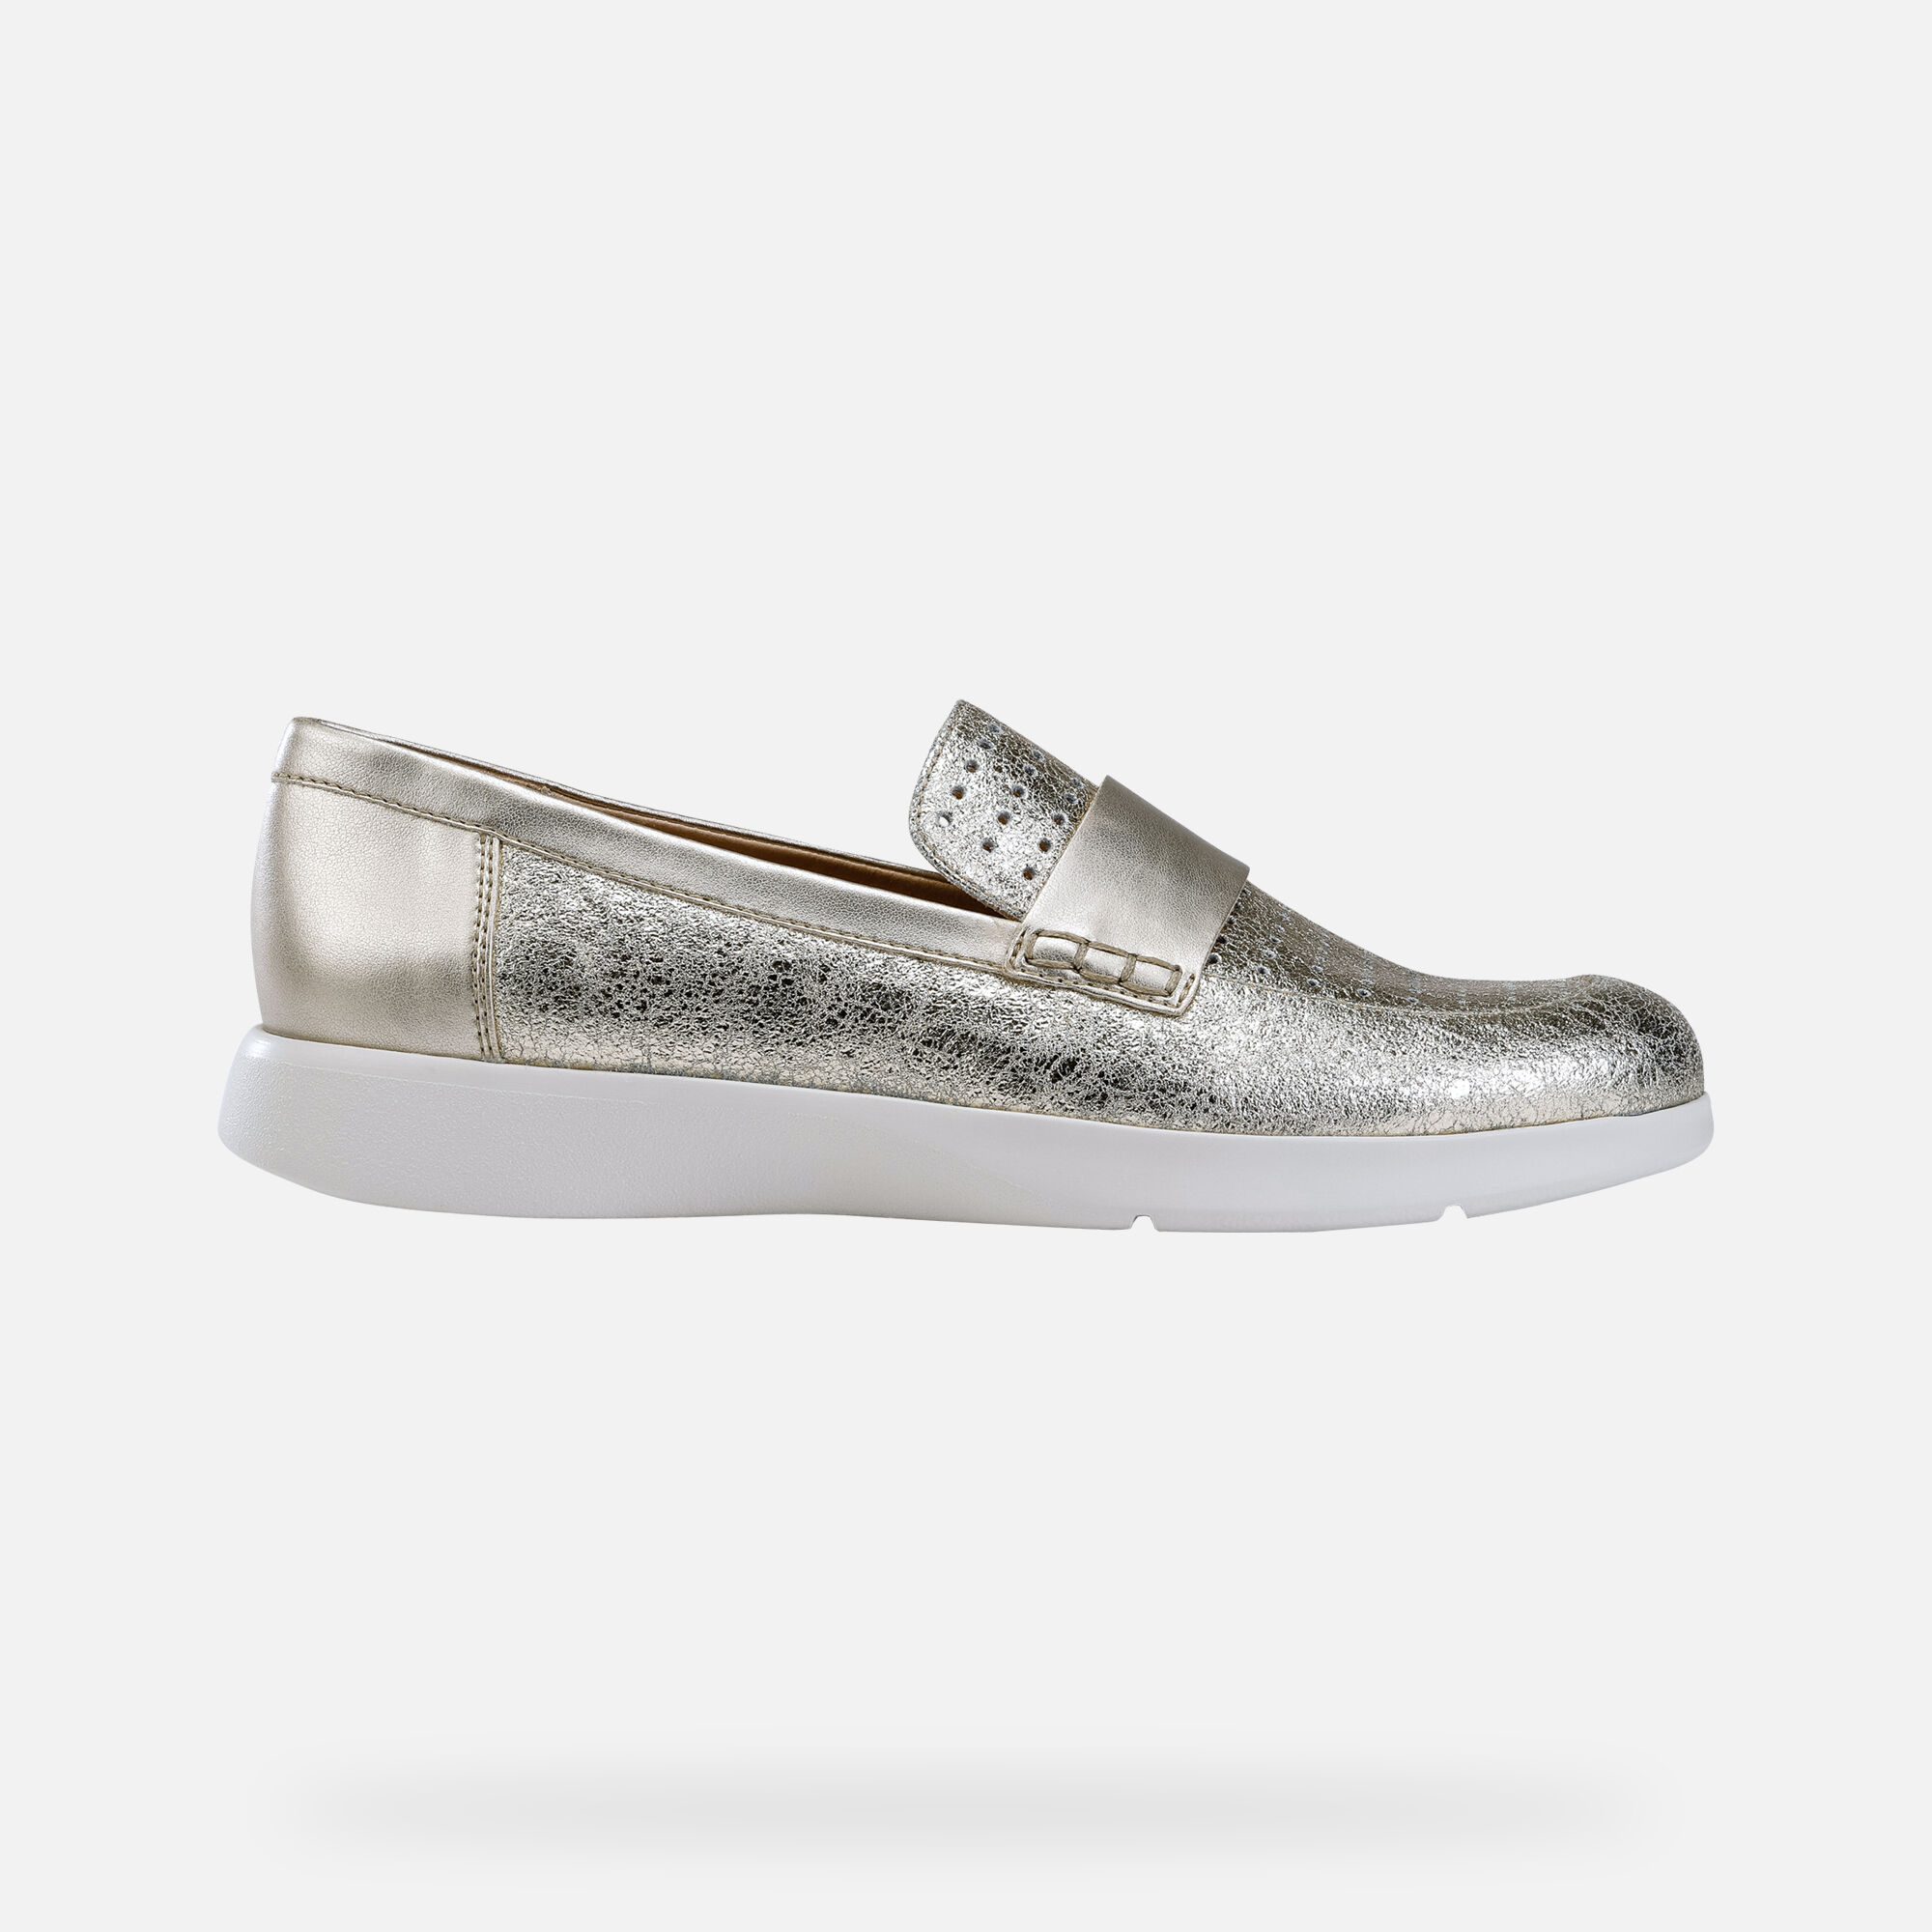 Geox D ARJOLA: Gold Woman Moccasins | Geox SS19